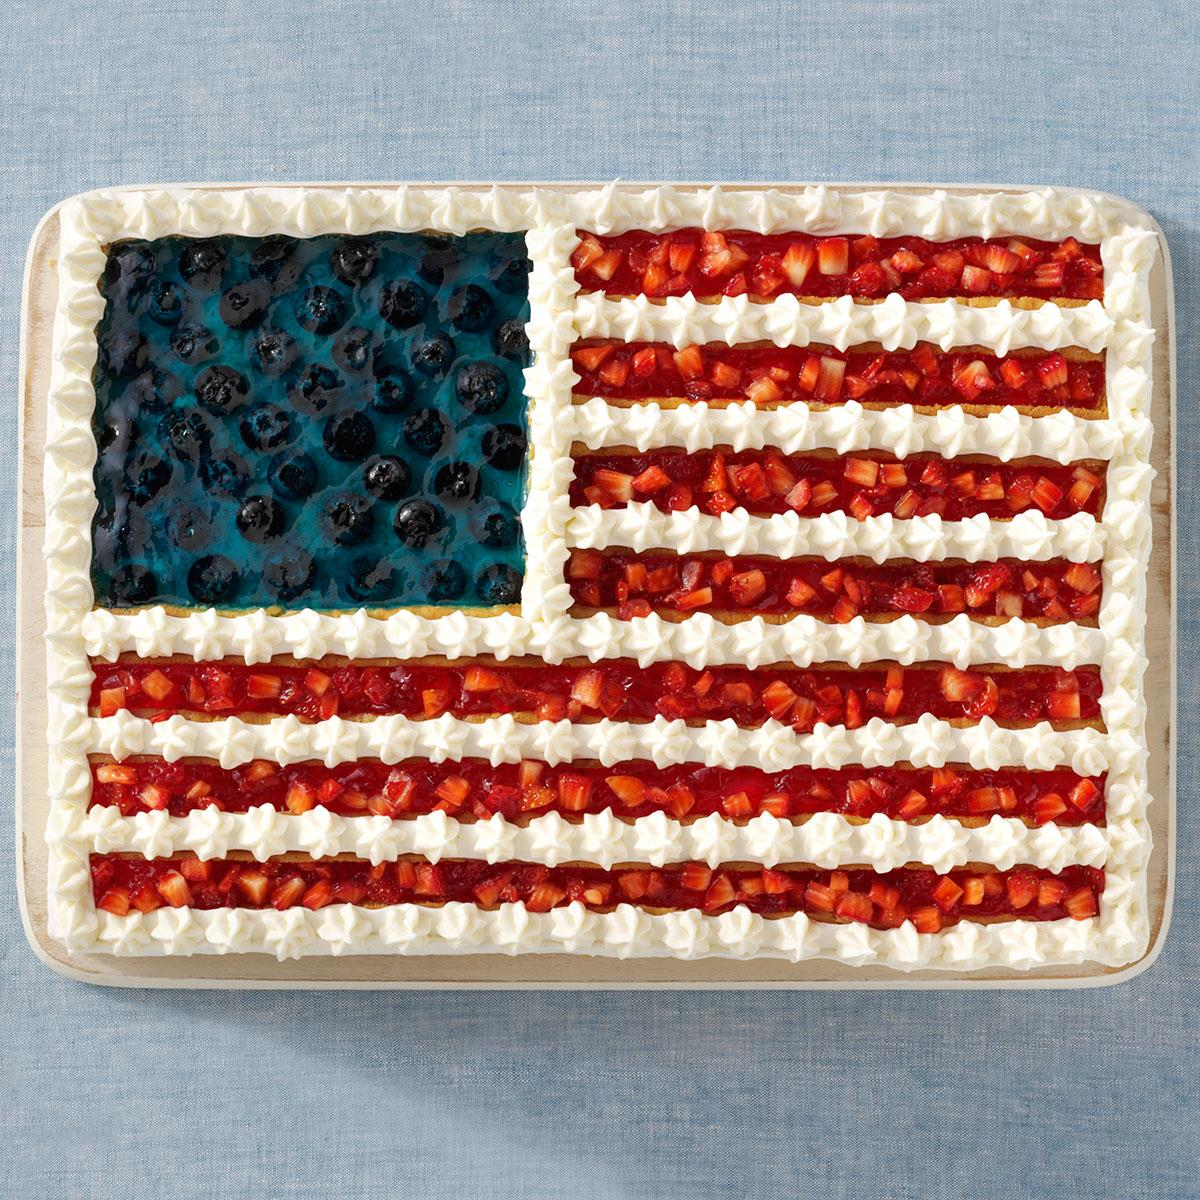 17 Best images about Flag Day on Pinterest | The muse, Us flags